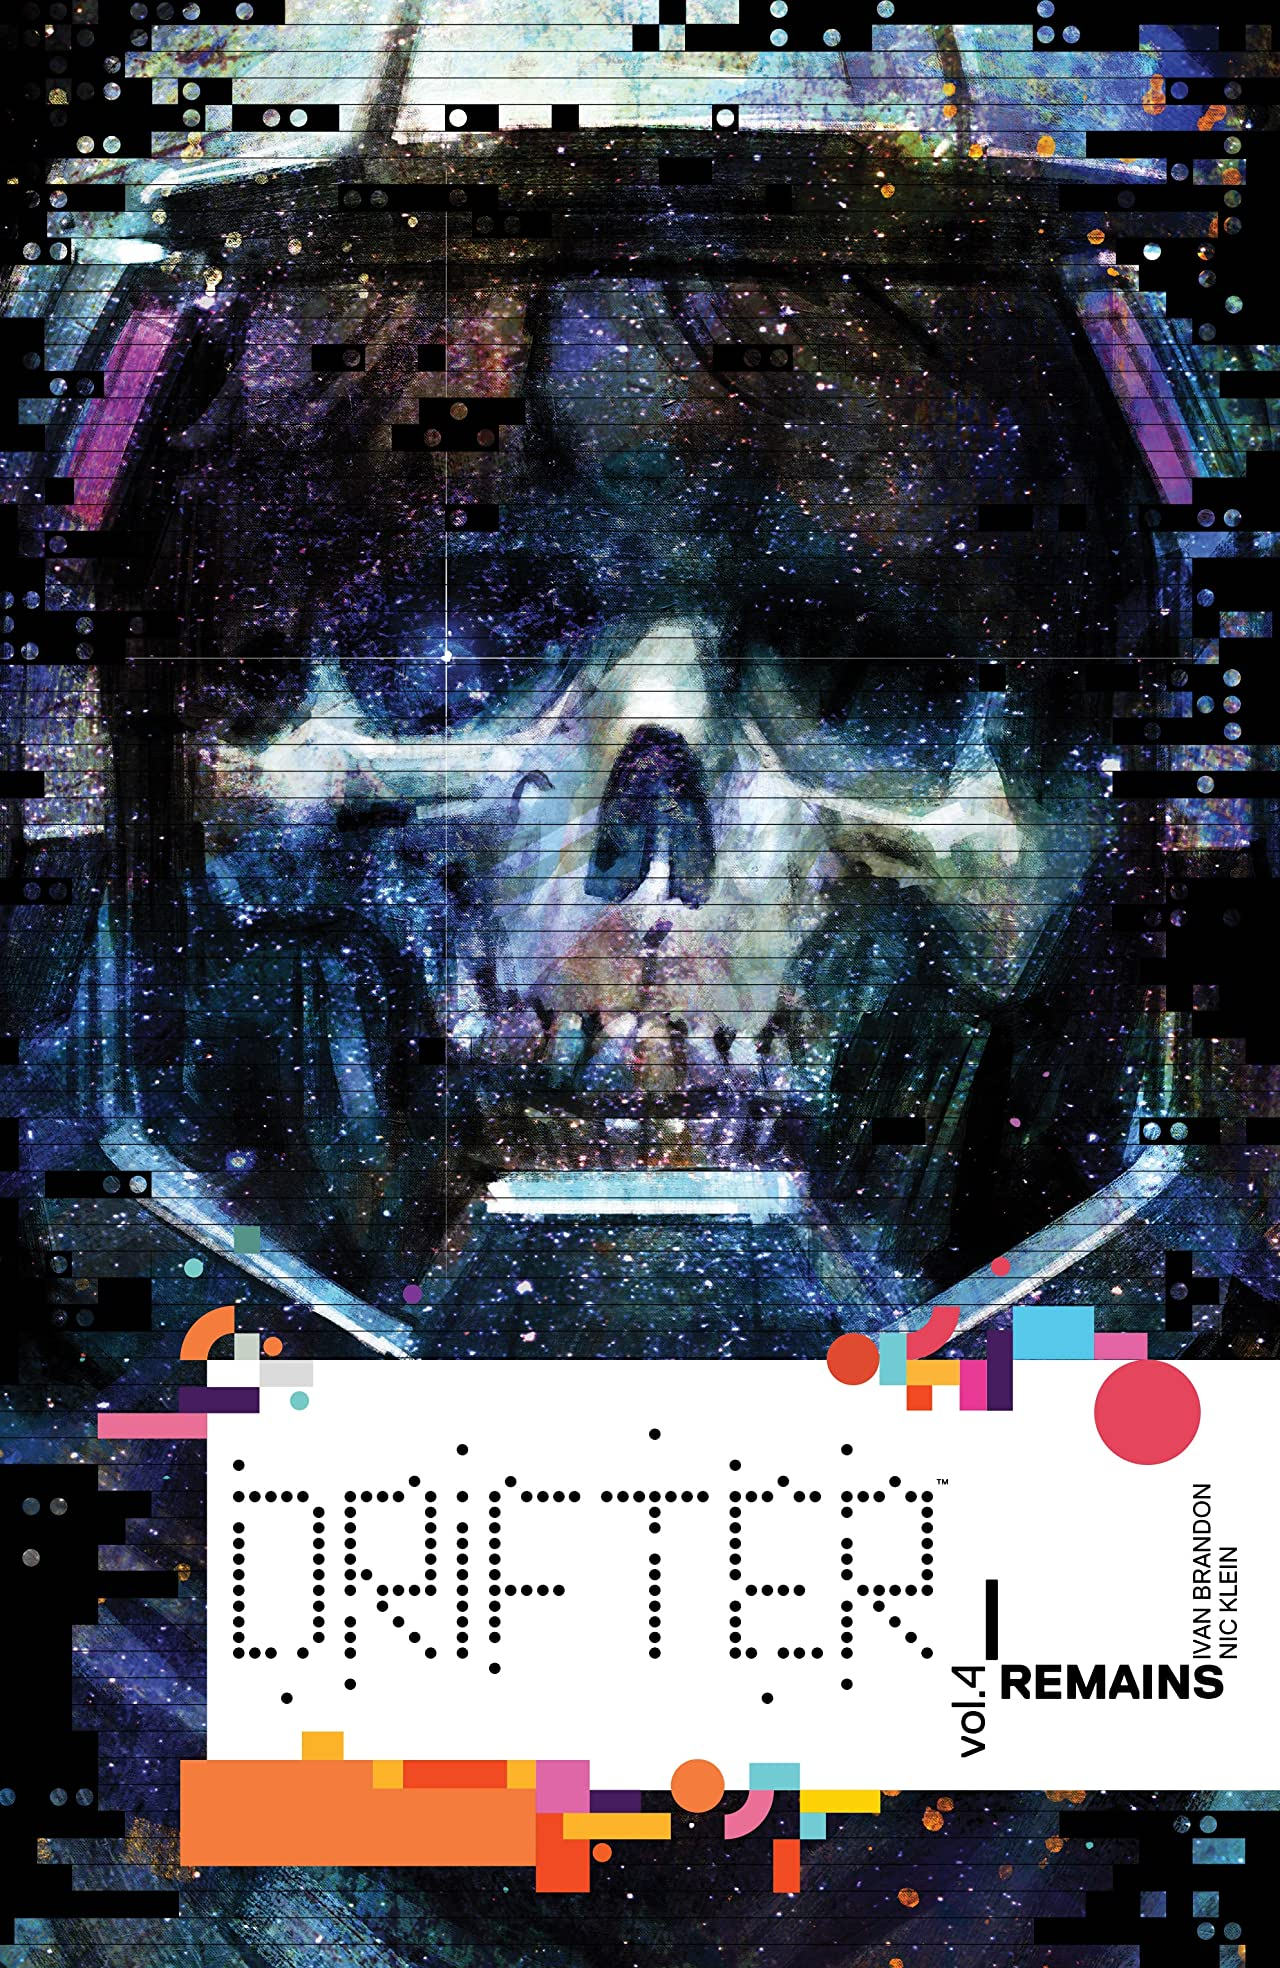 Drifter Tome 4: Remains